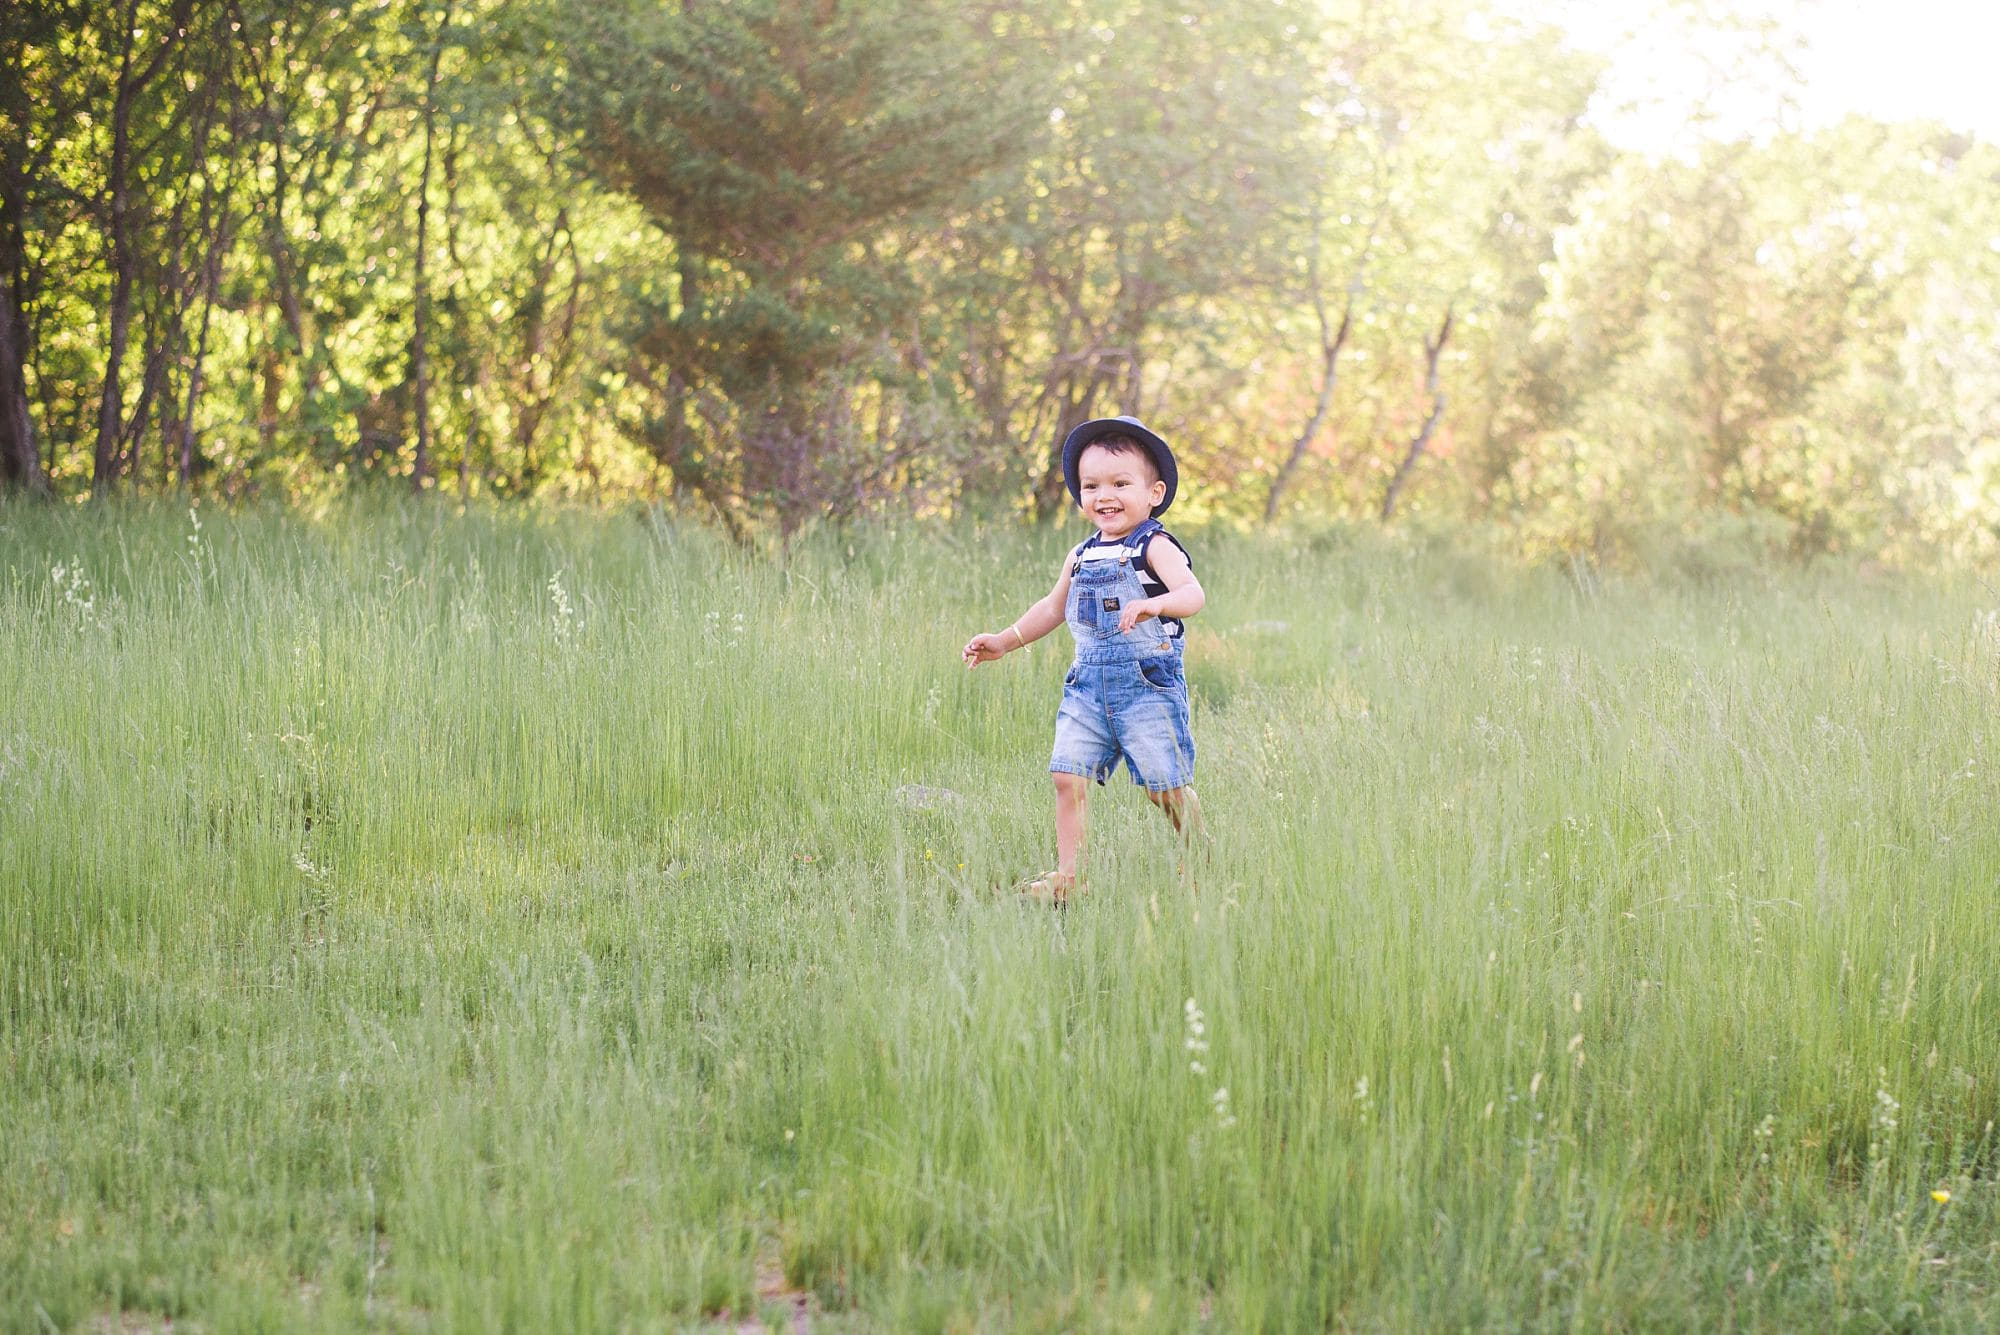 Little boy toddler running through a grassy field in his blue overalls and fedora during golden hour